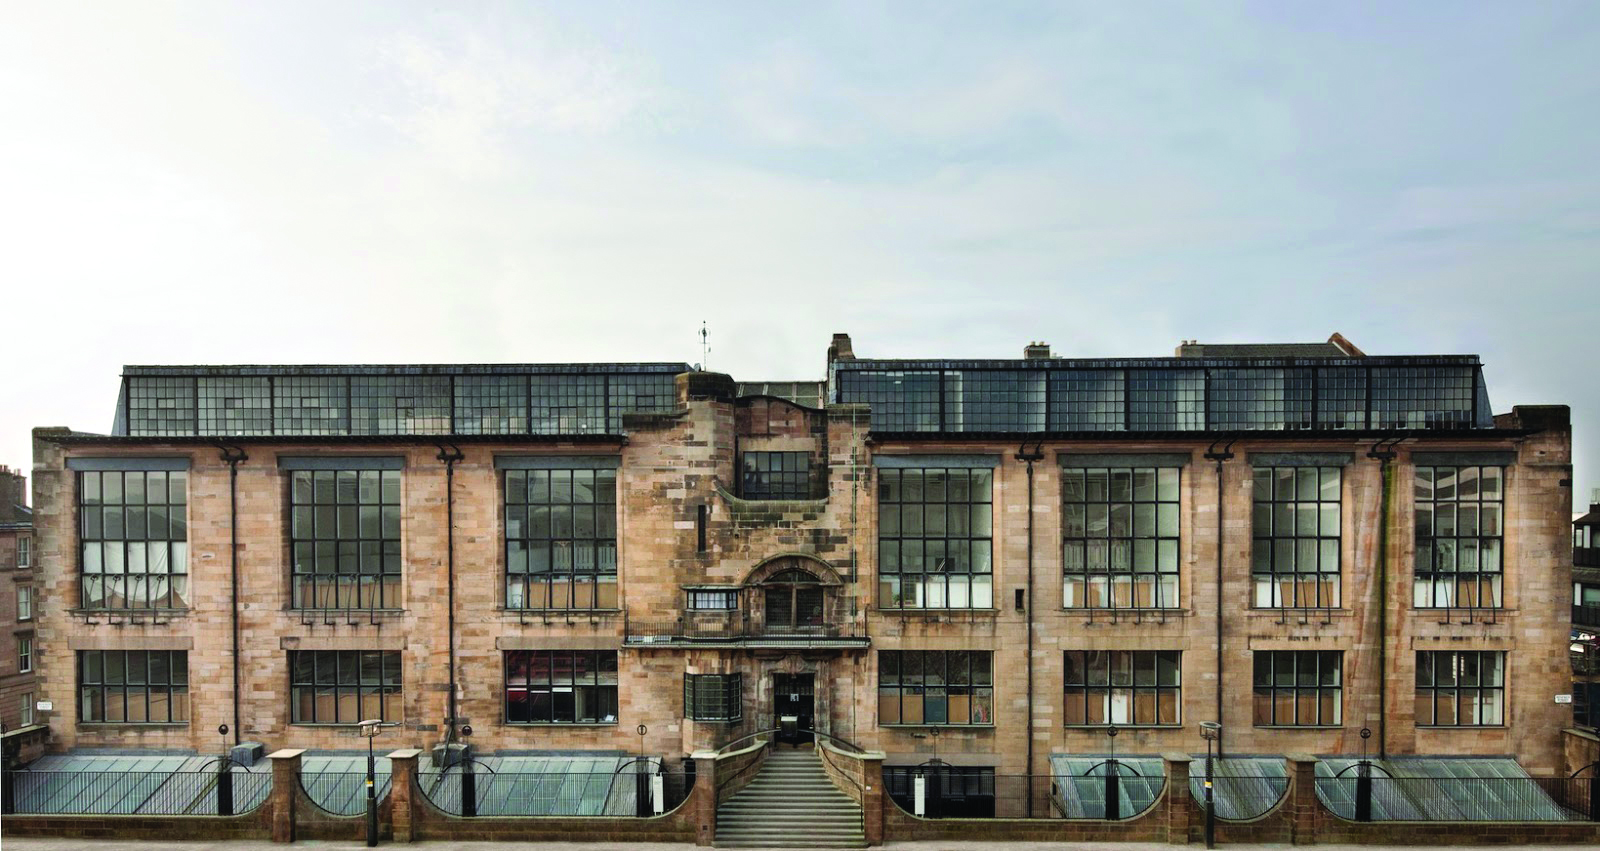 Facade of Glasgow School of Art